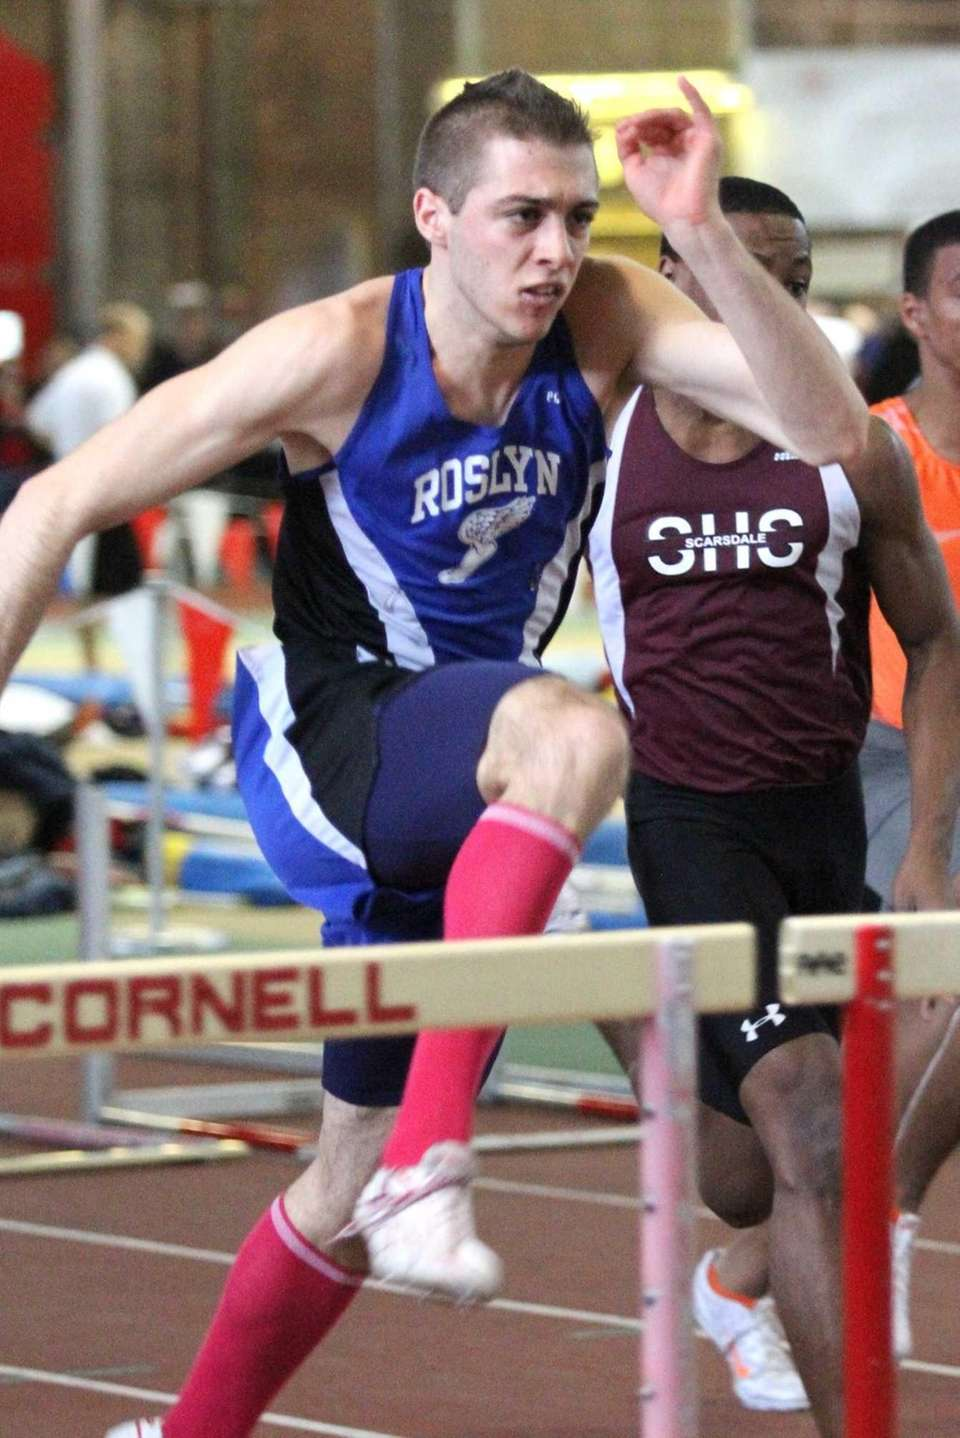 Roslyn's Luke Pascale clears the hurdle while winning